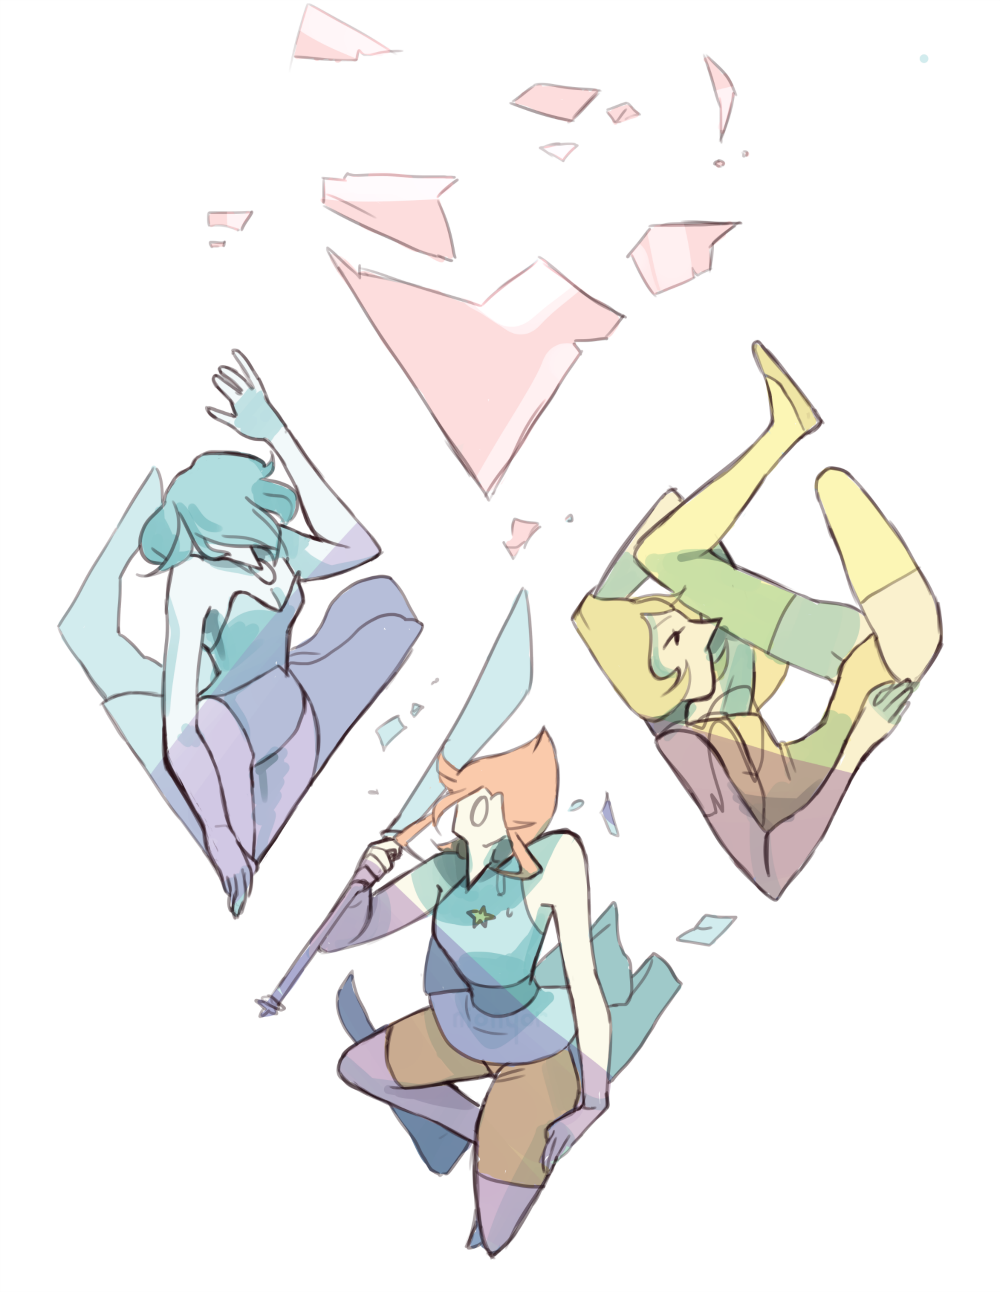 the great diamond authority